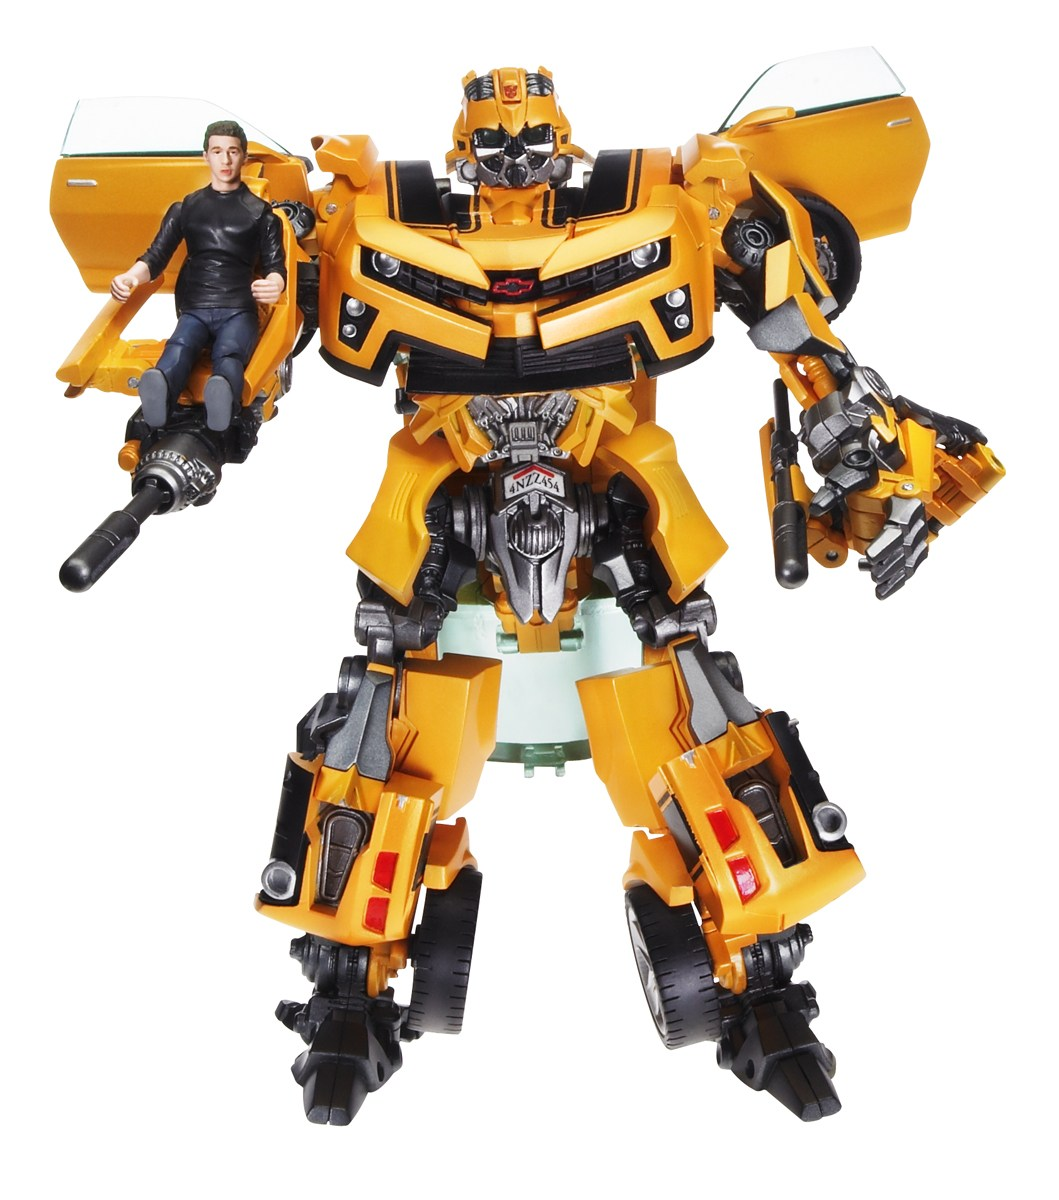 HASBRO Transformers Revenge of the Fallen Human Alliance Bumblebee with Sam Witwicky (Бамблби и...